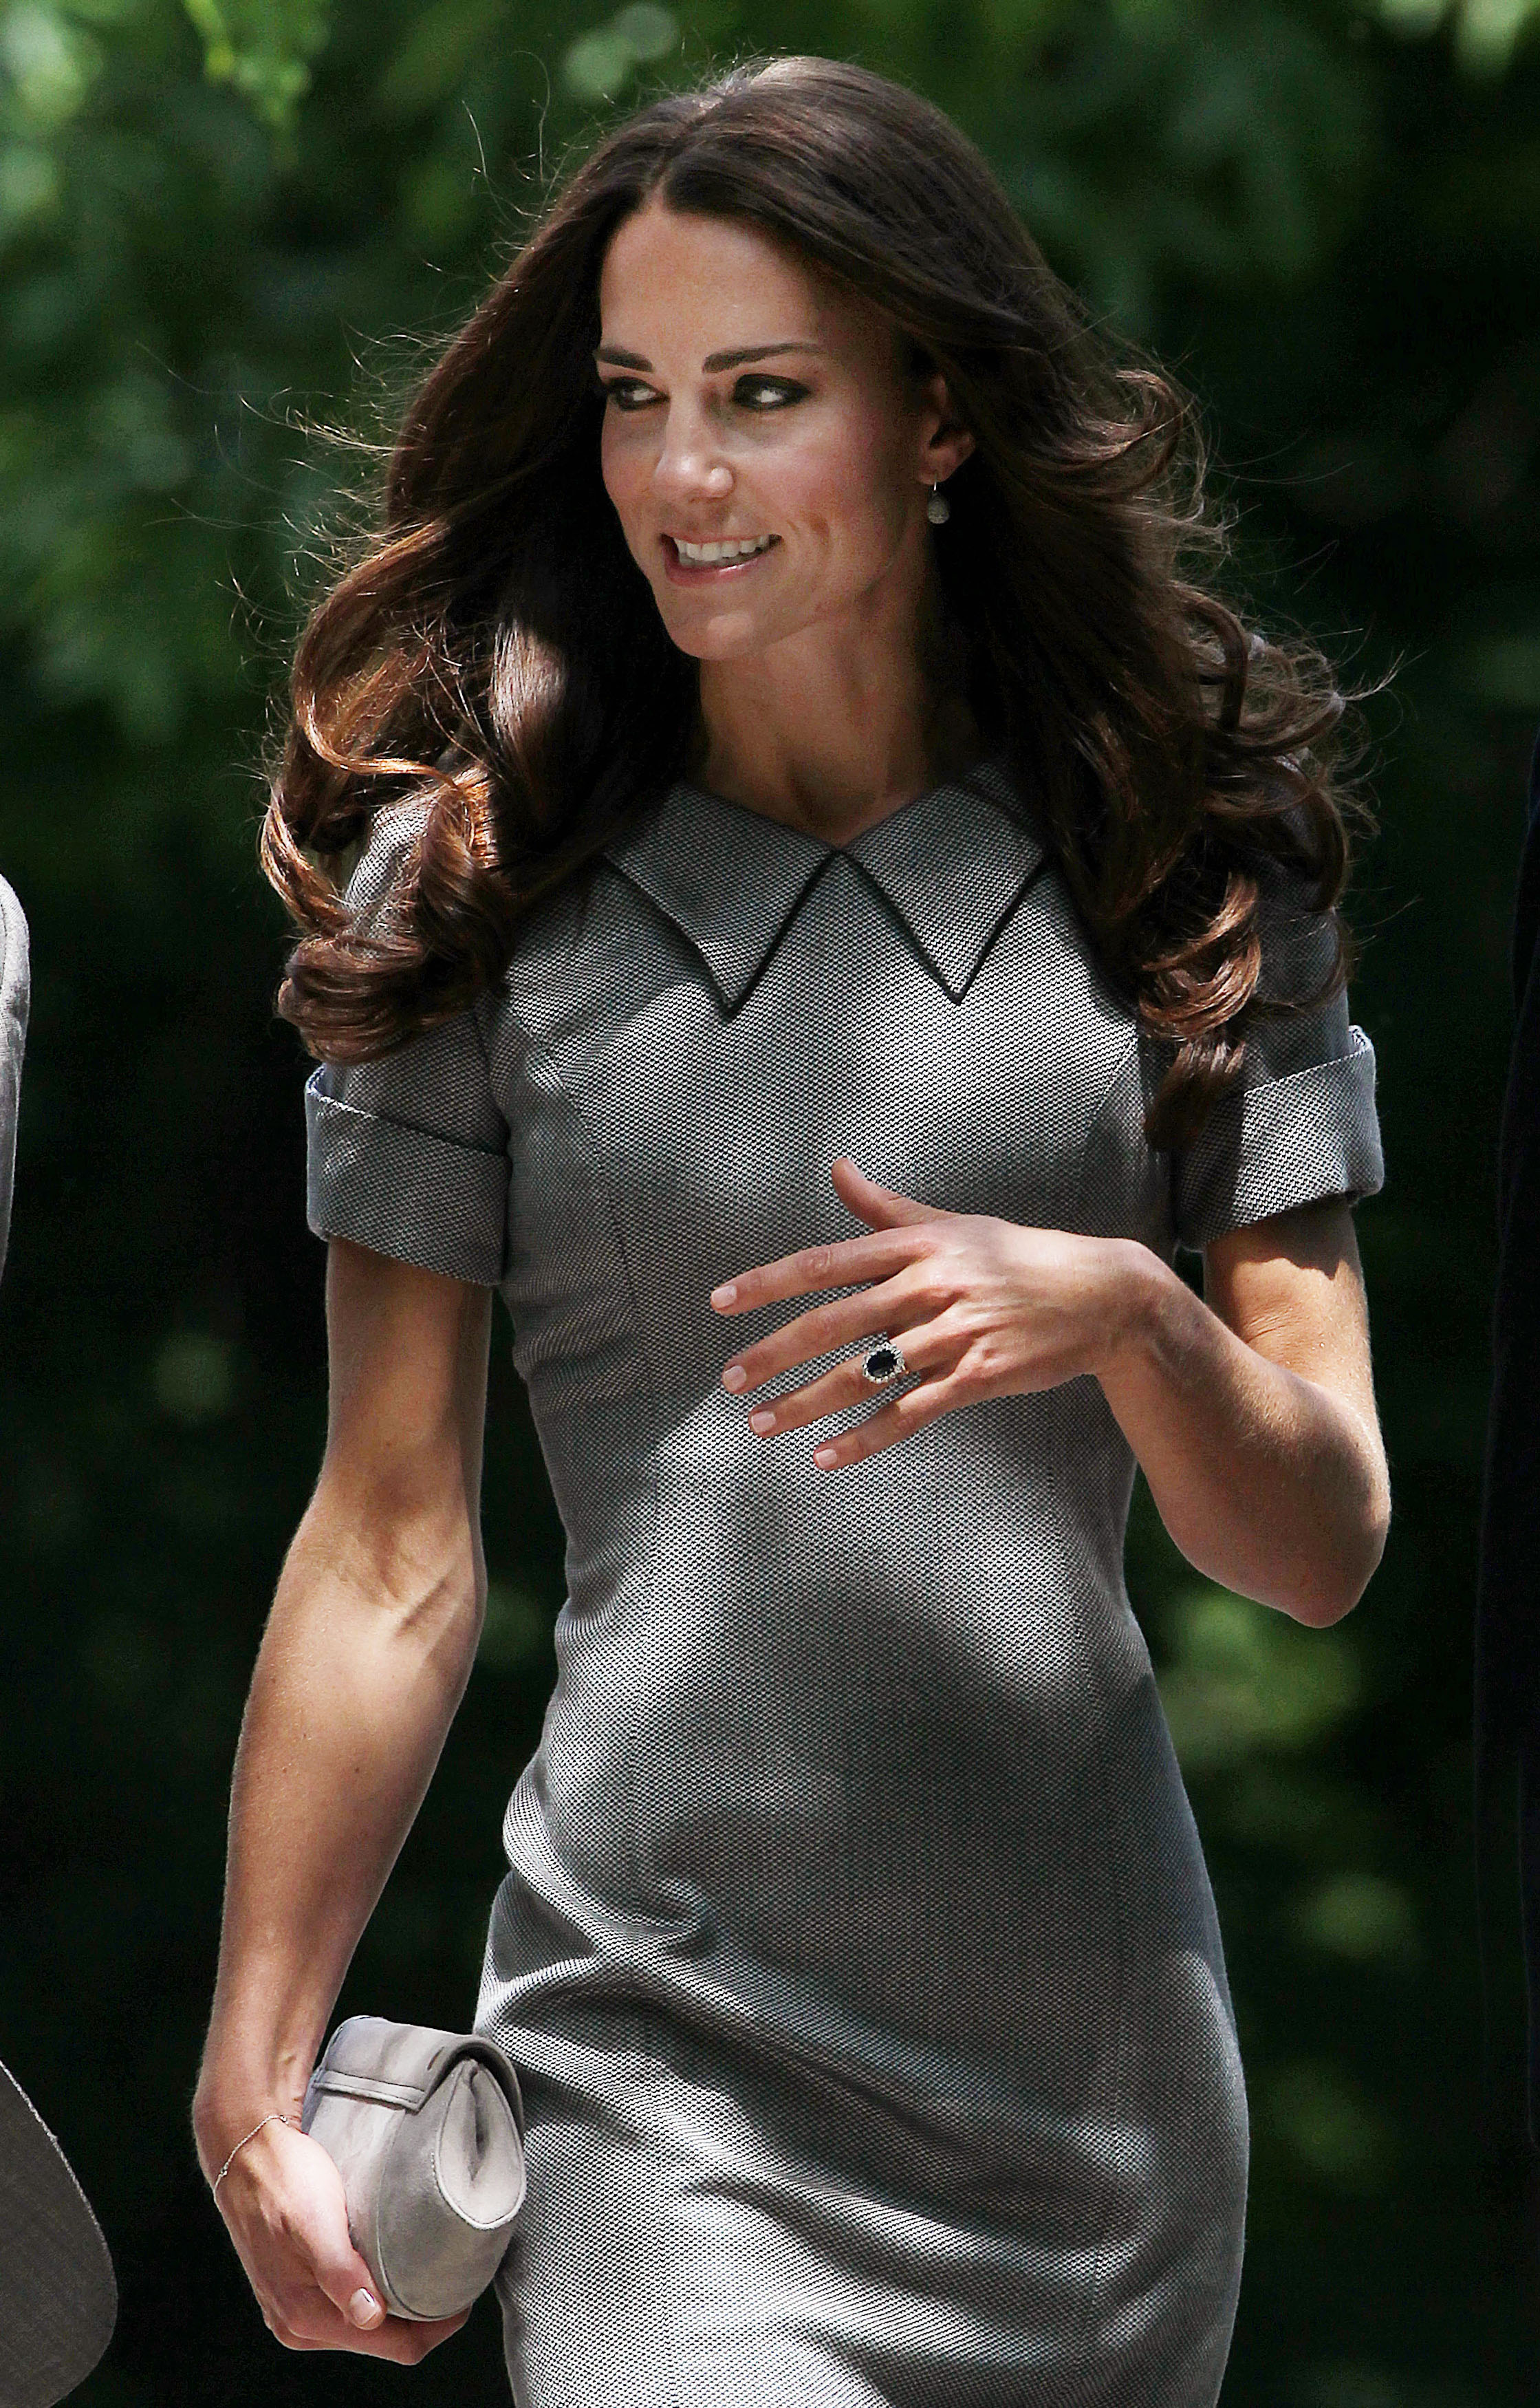 <strong>Diana-Inspired</strong>                                   On July 2, 2011, the Duchess visited Ottawa in a gray Catherine Walker dress. The designer was one of Princess Diana's favorites.